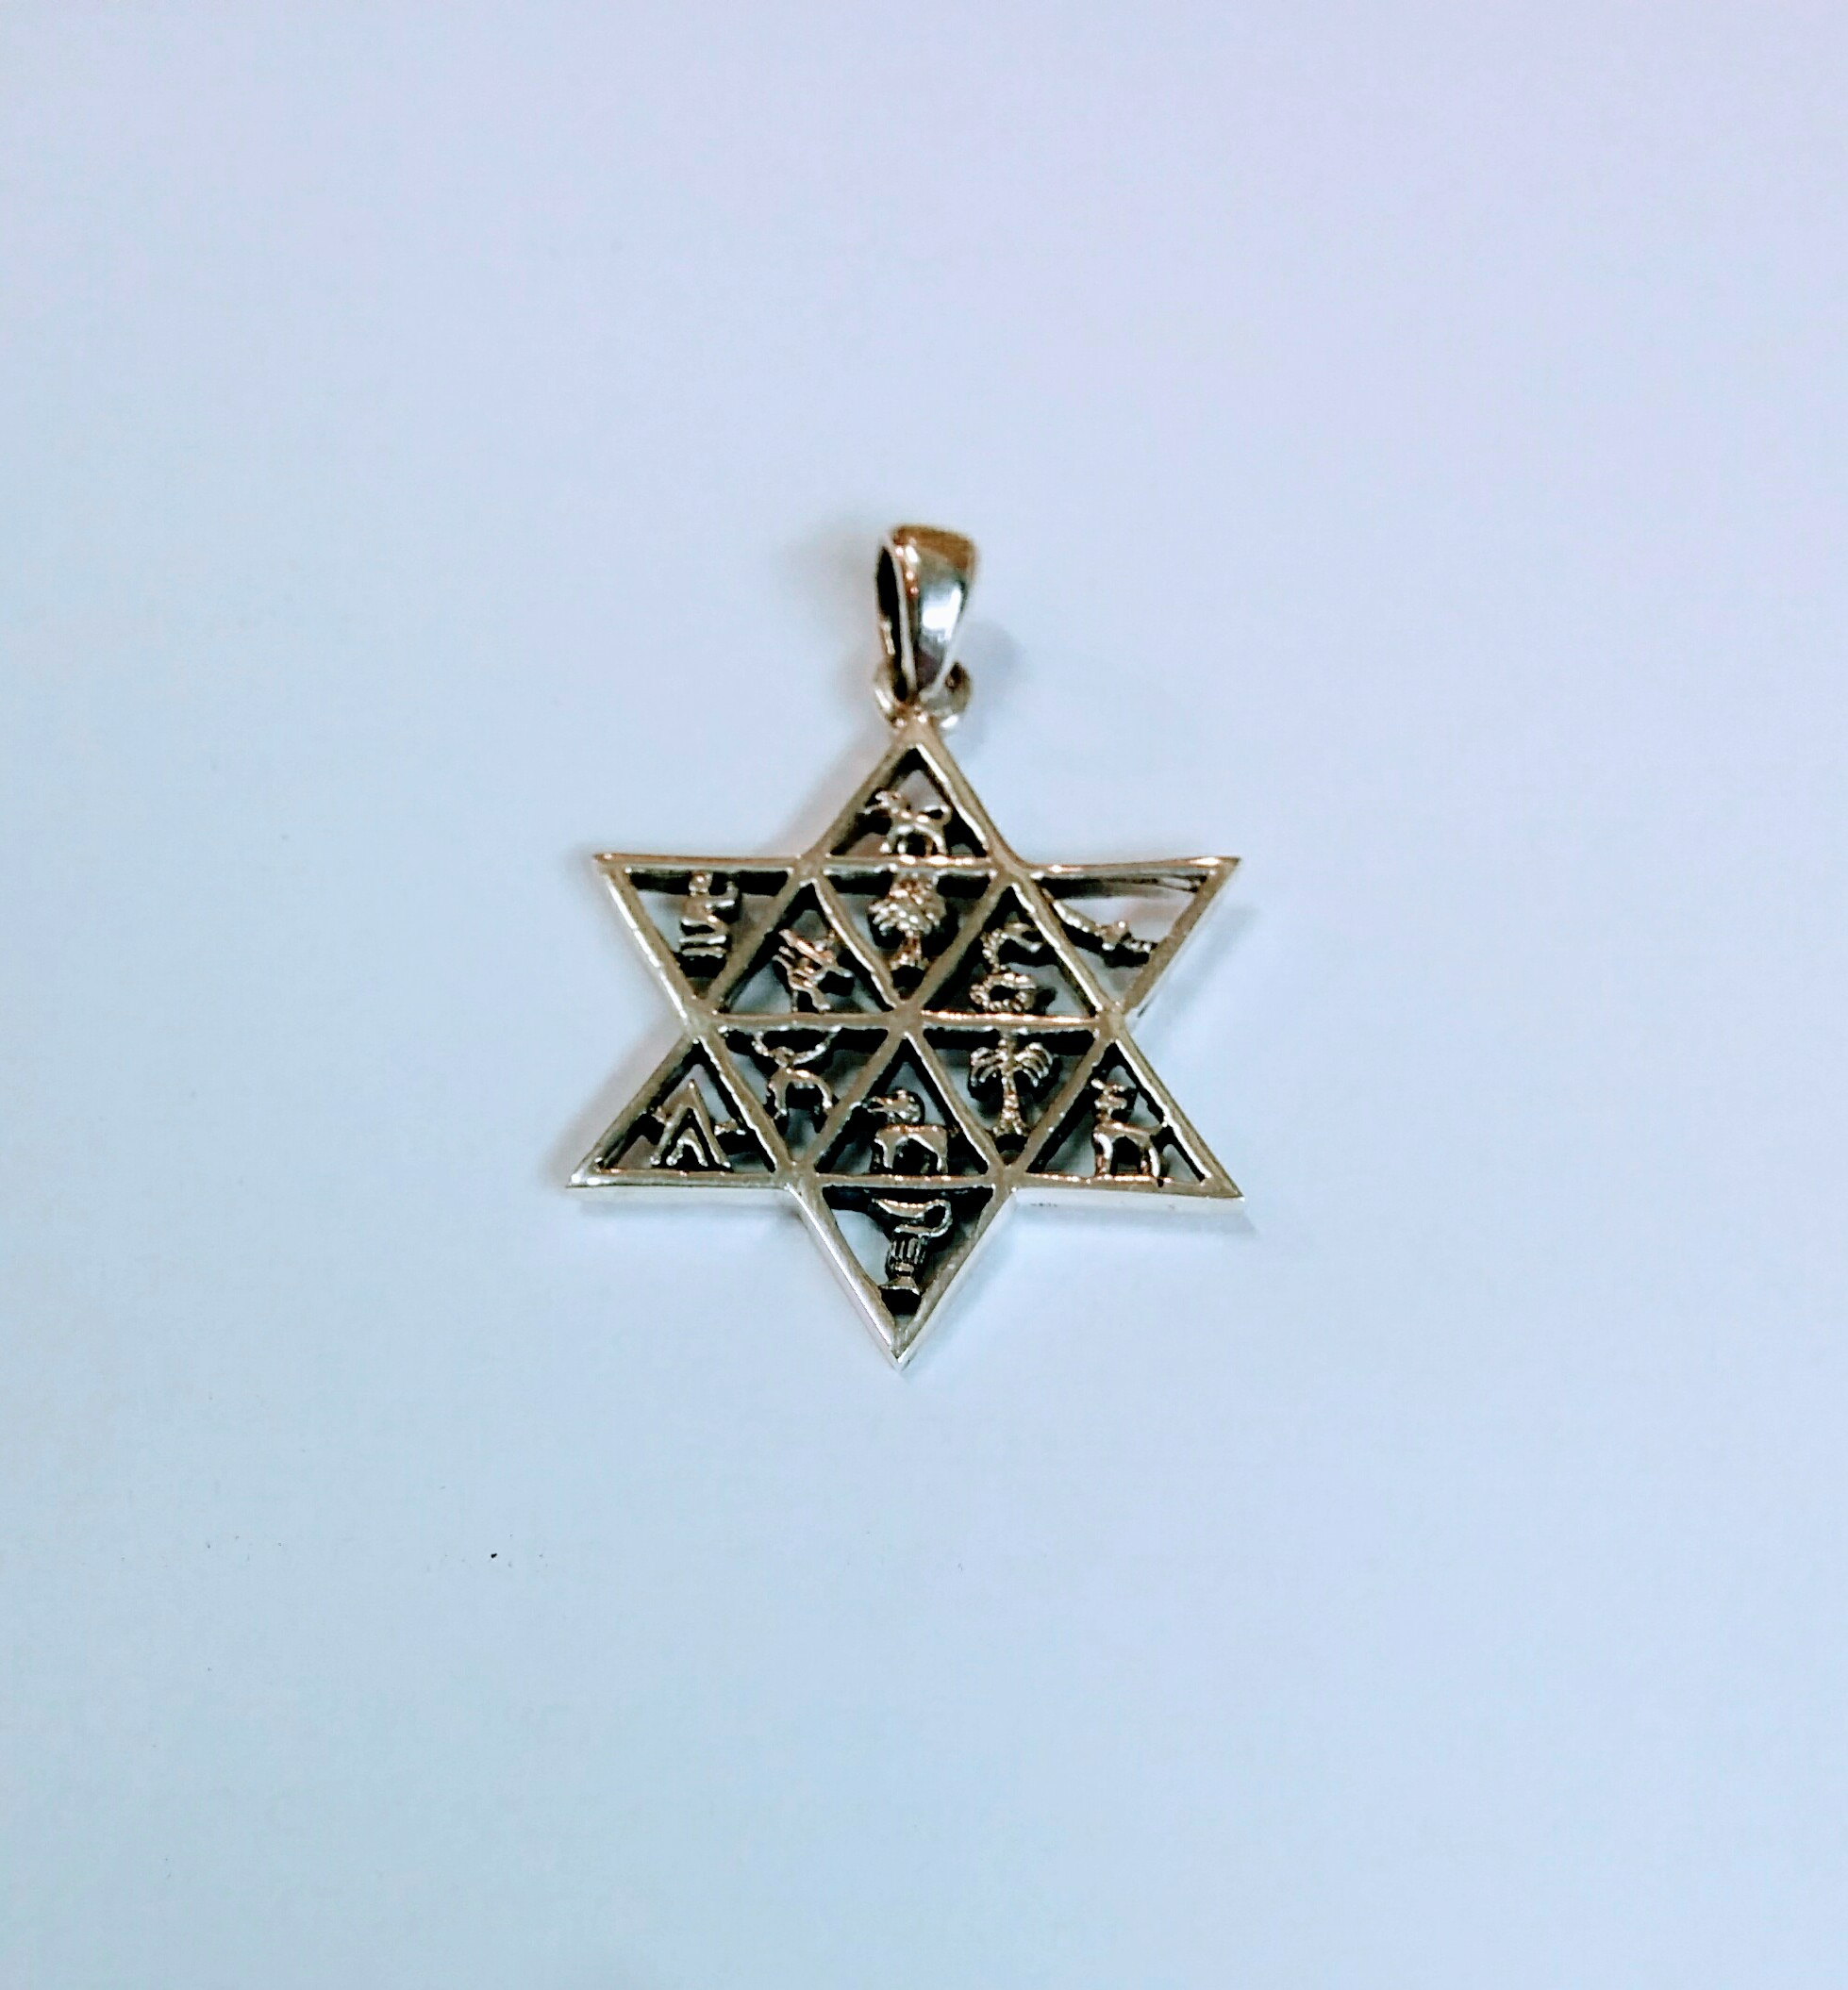 Star Of David With Twelve Tribes Of Israel Silver Pendant Necklace Judaica Jewelry Jewish Jewelry Online Store Powered By Storenvy